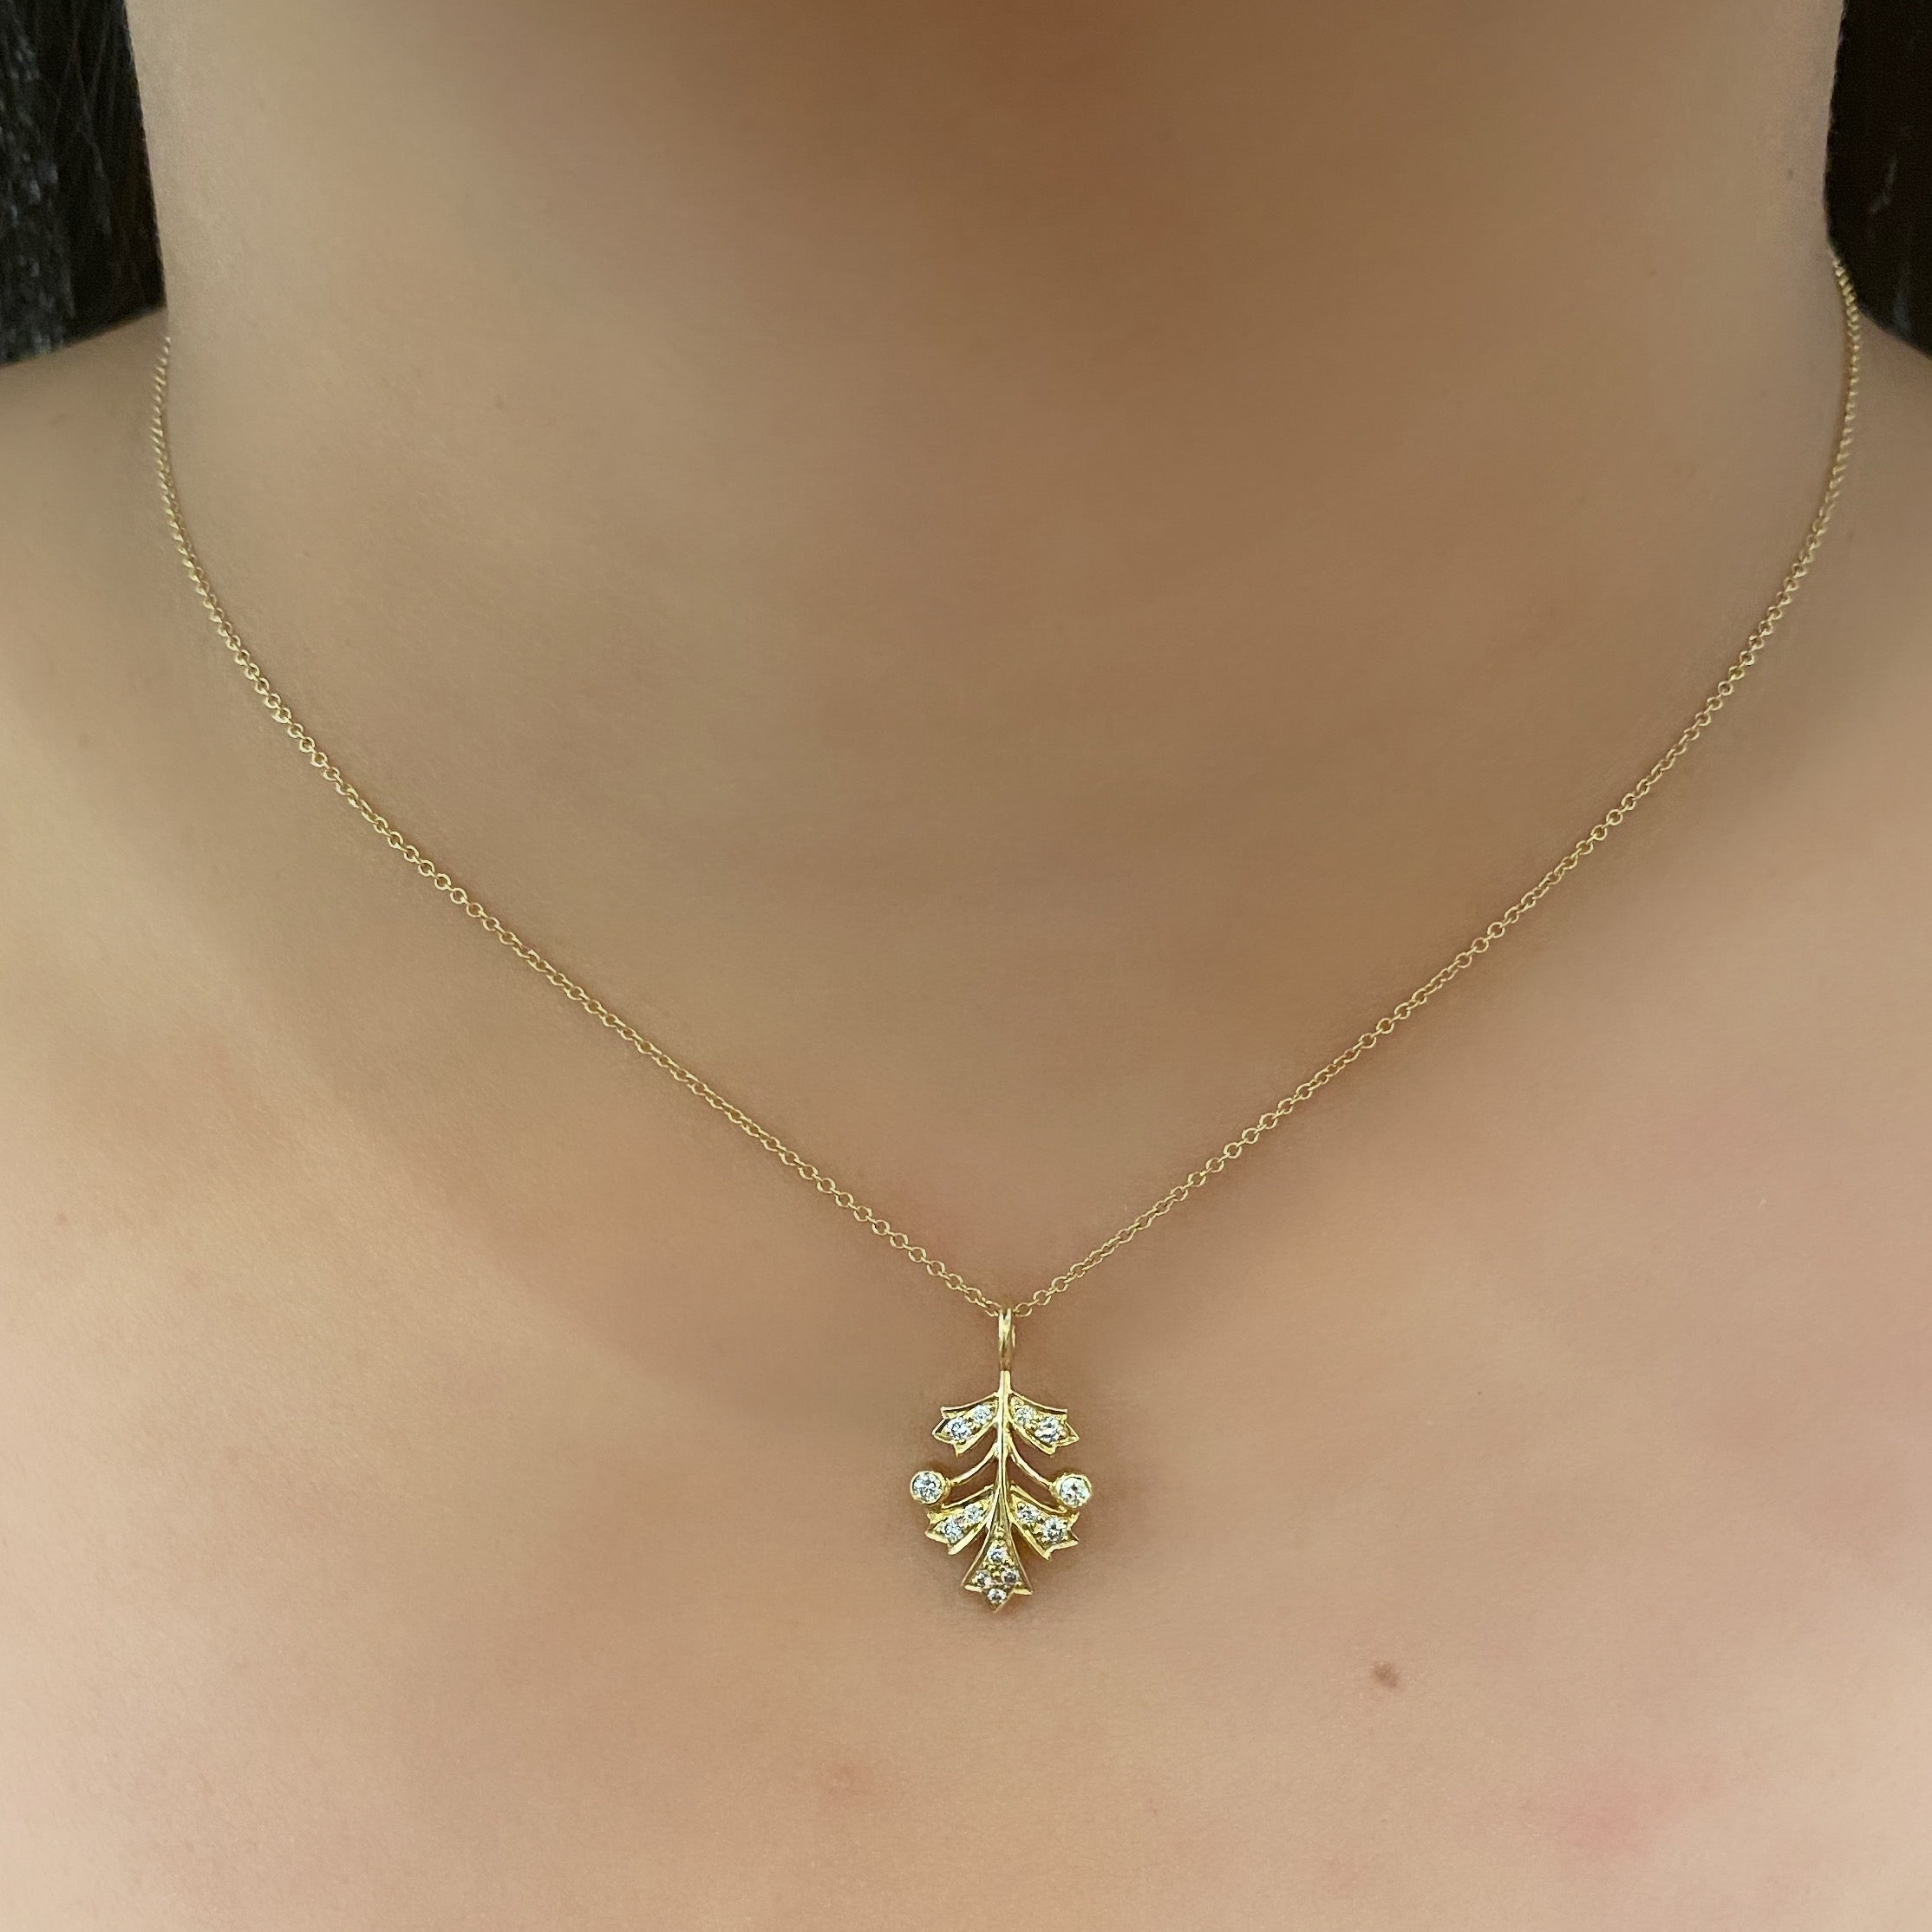 The Leaf Necklace